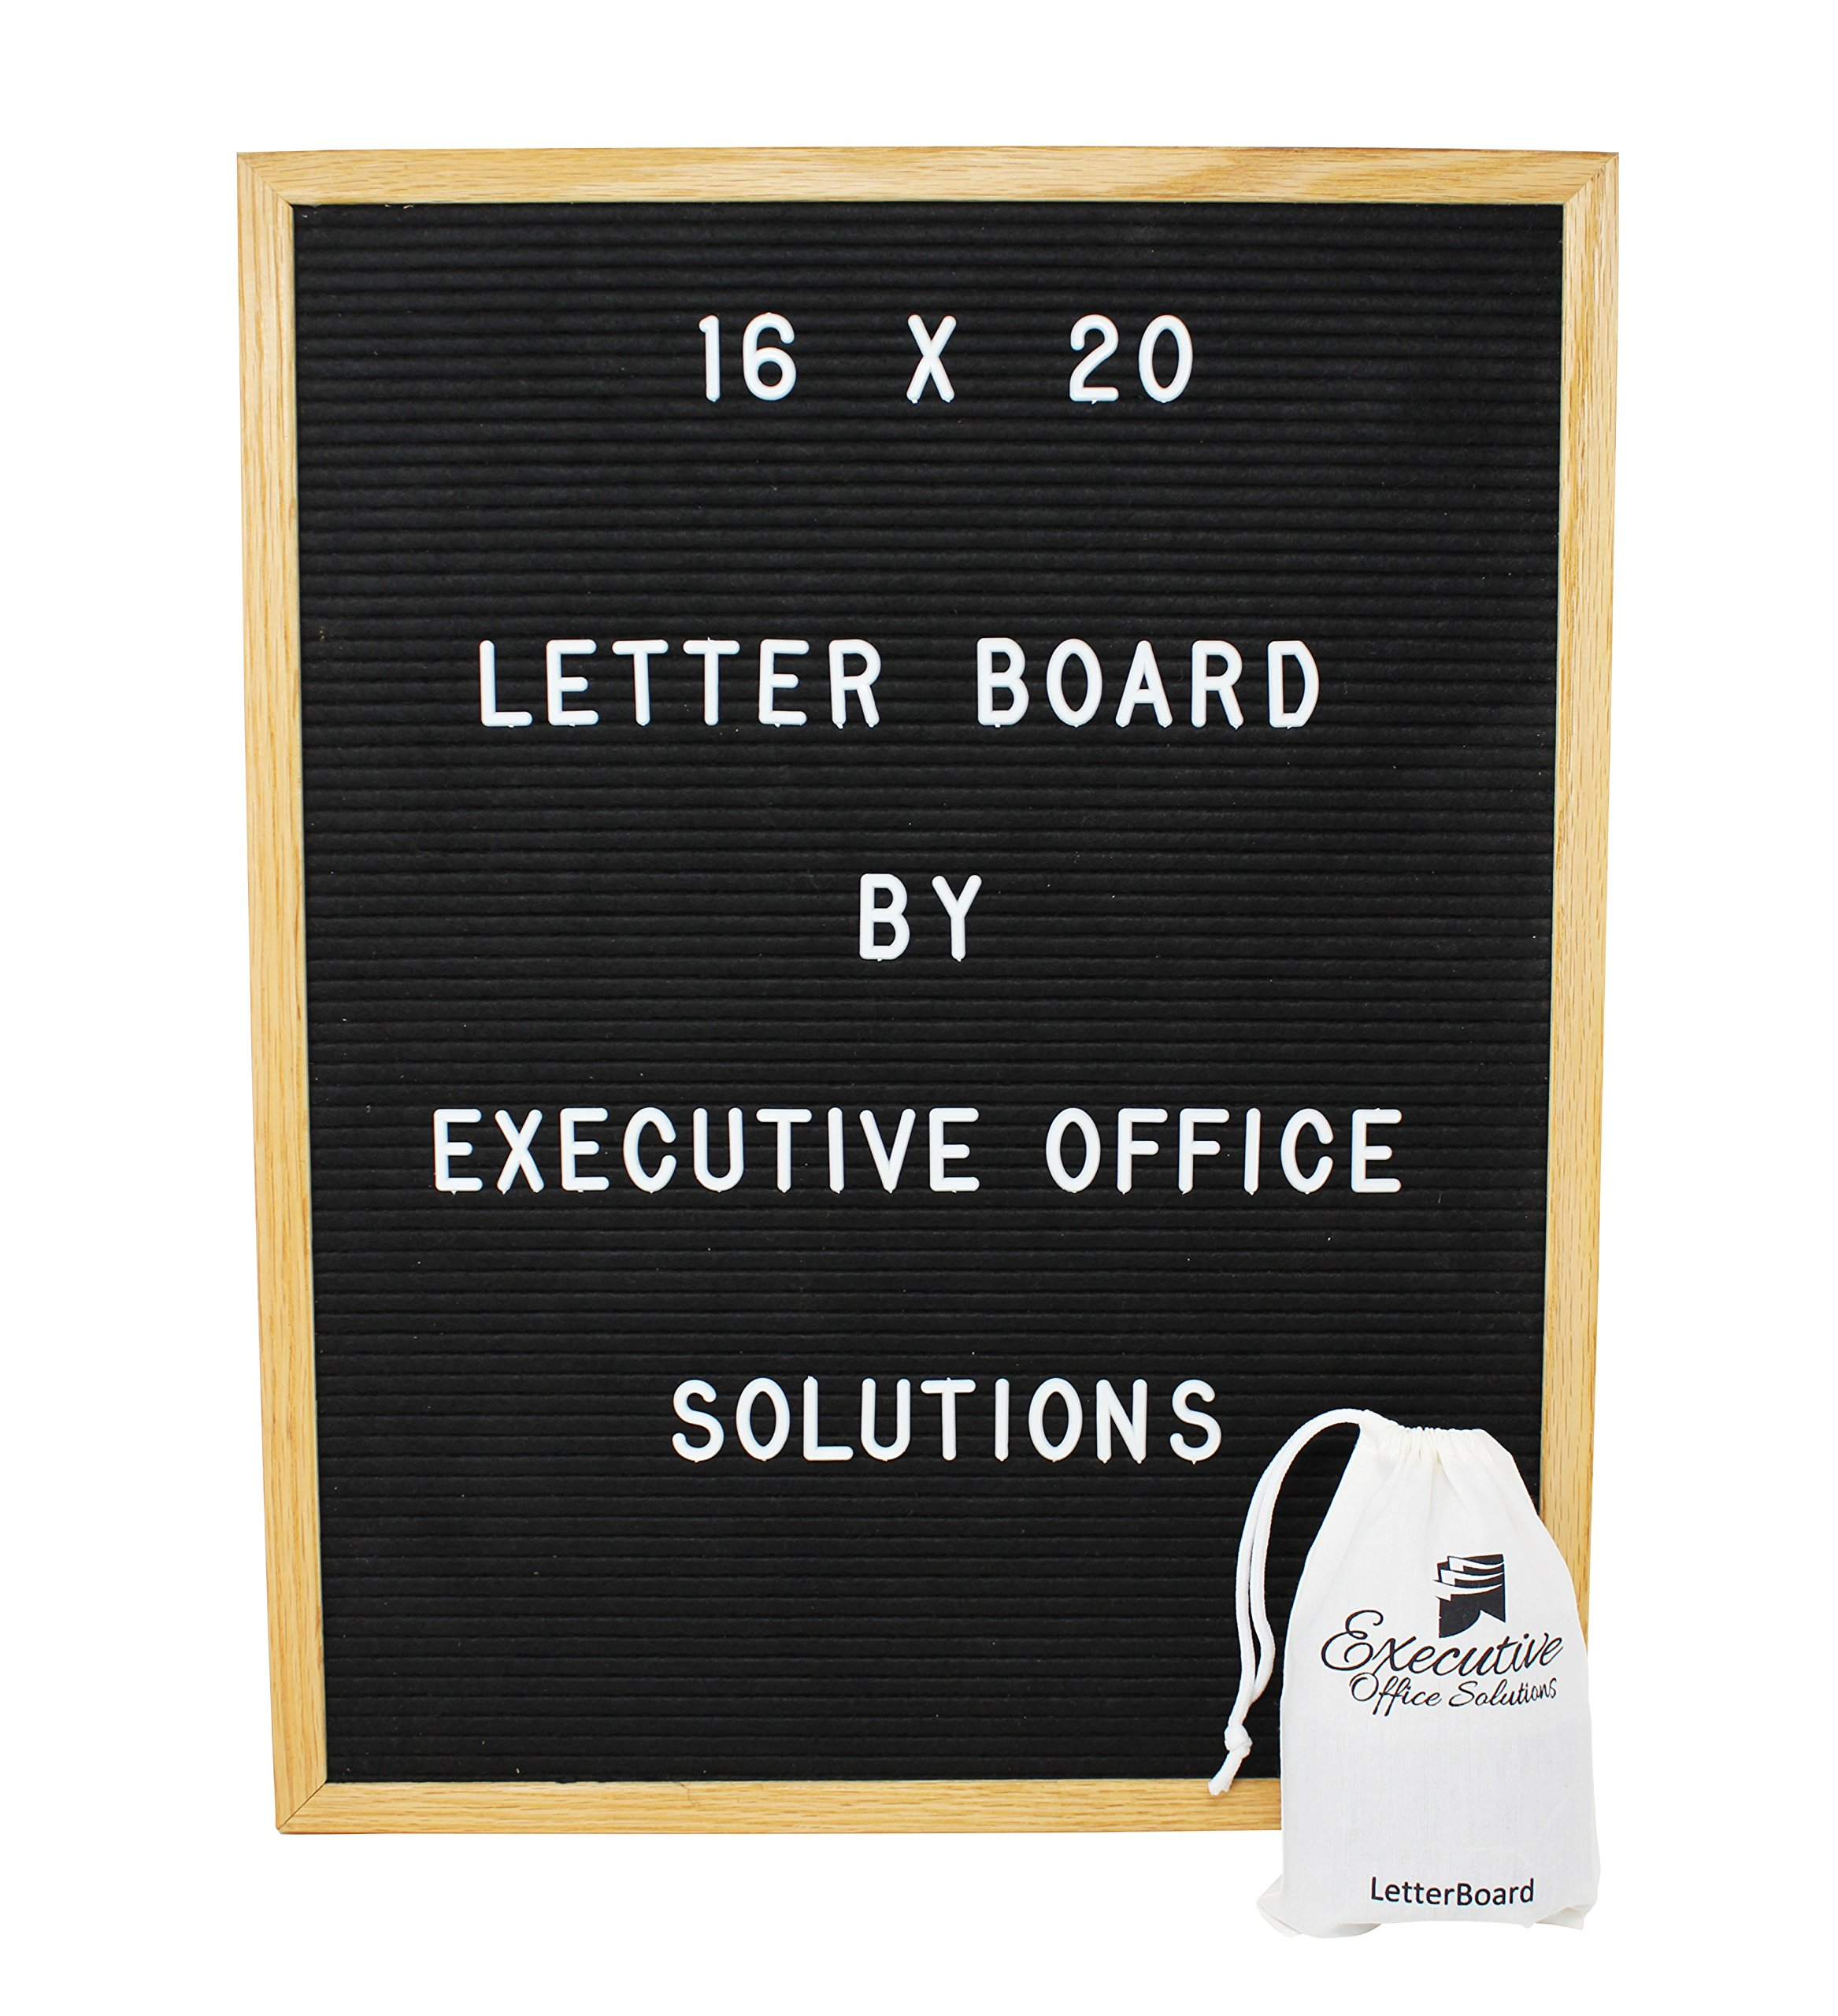 16x20 Changeable Letter Board - Black with Solid Oak Frame, Wall Mount, Canvas Bag, and 290 Characters - by Executive Office Solutions